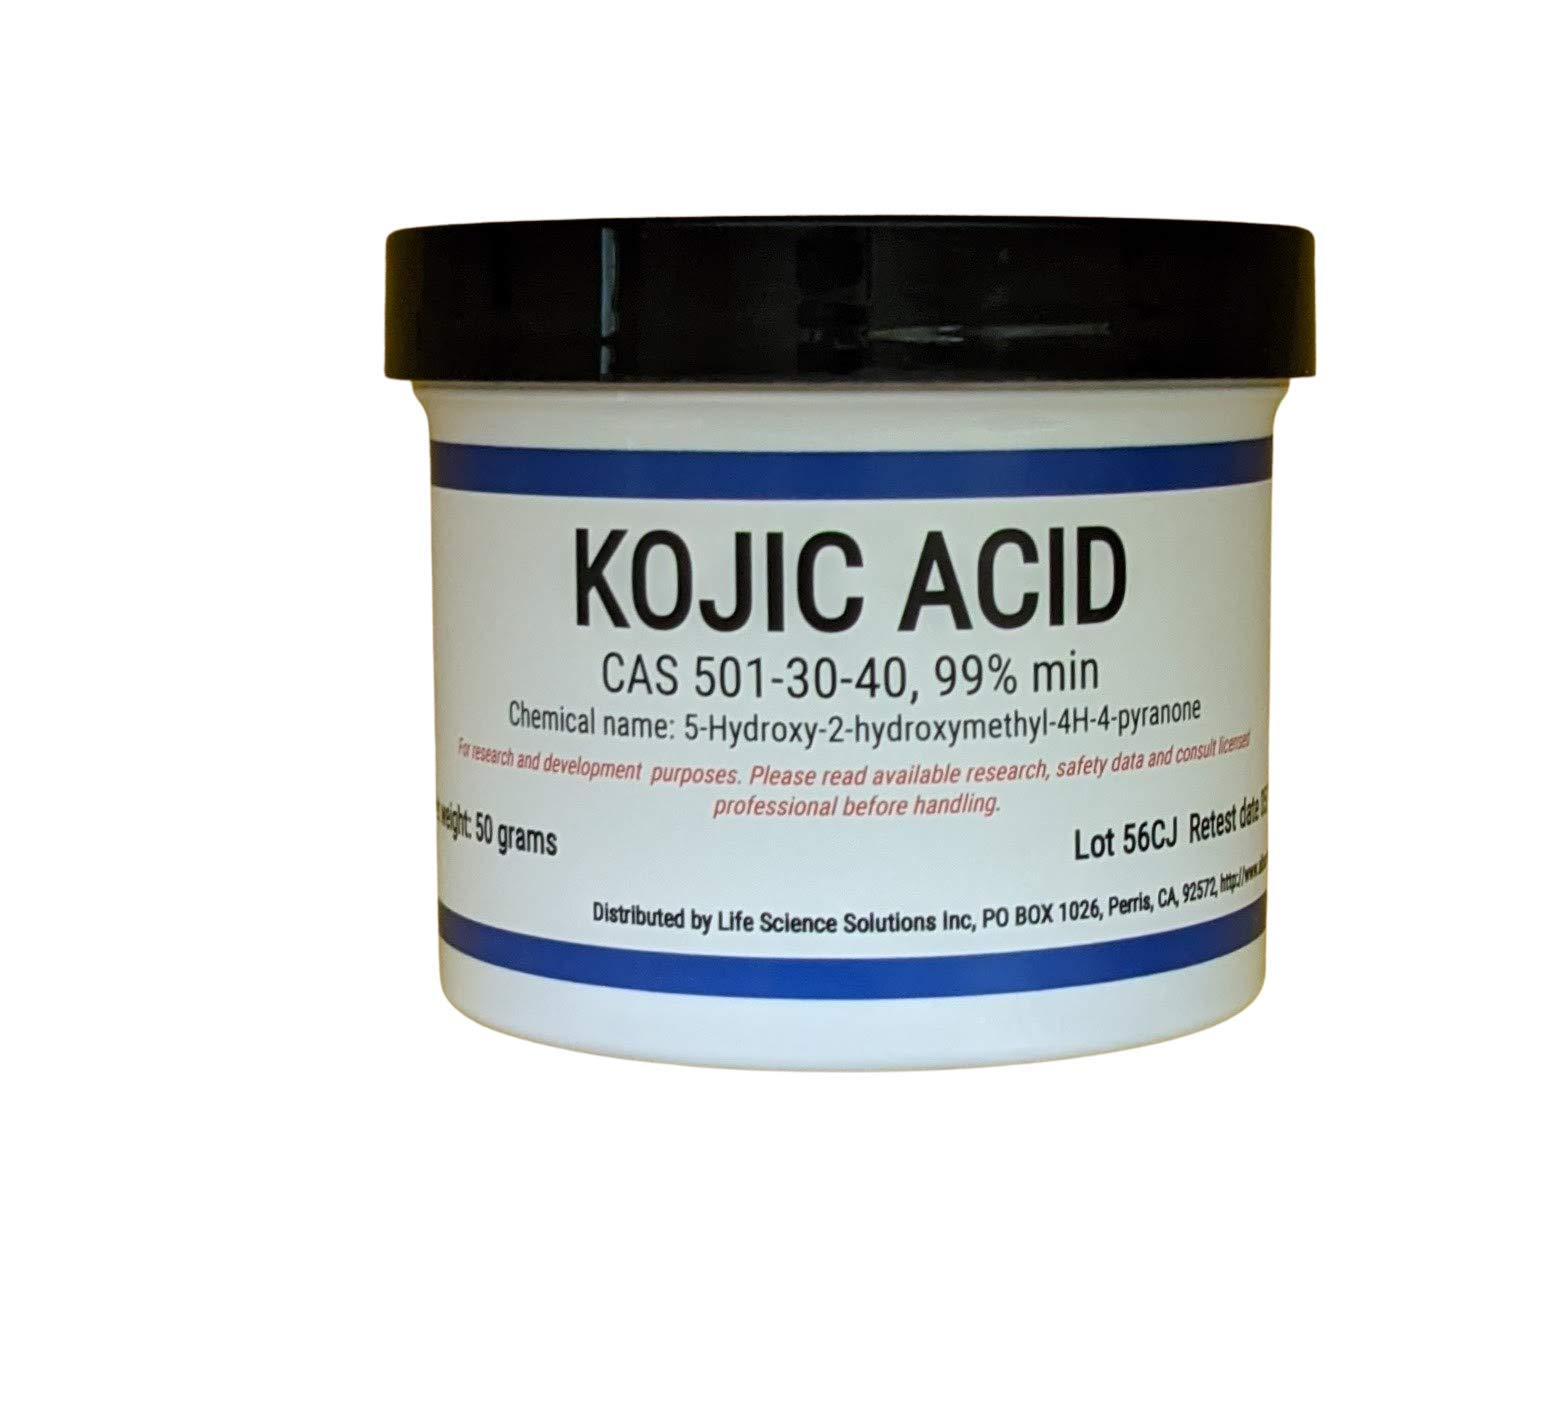 Kojic Acid Powder, 50 Grams